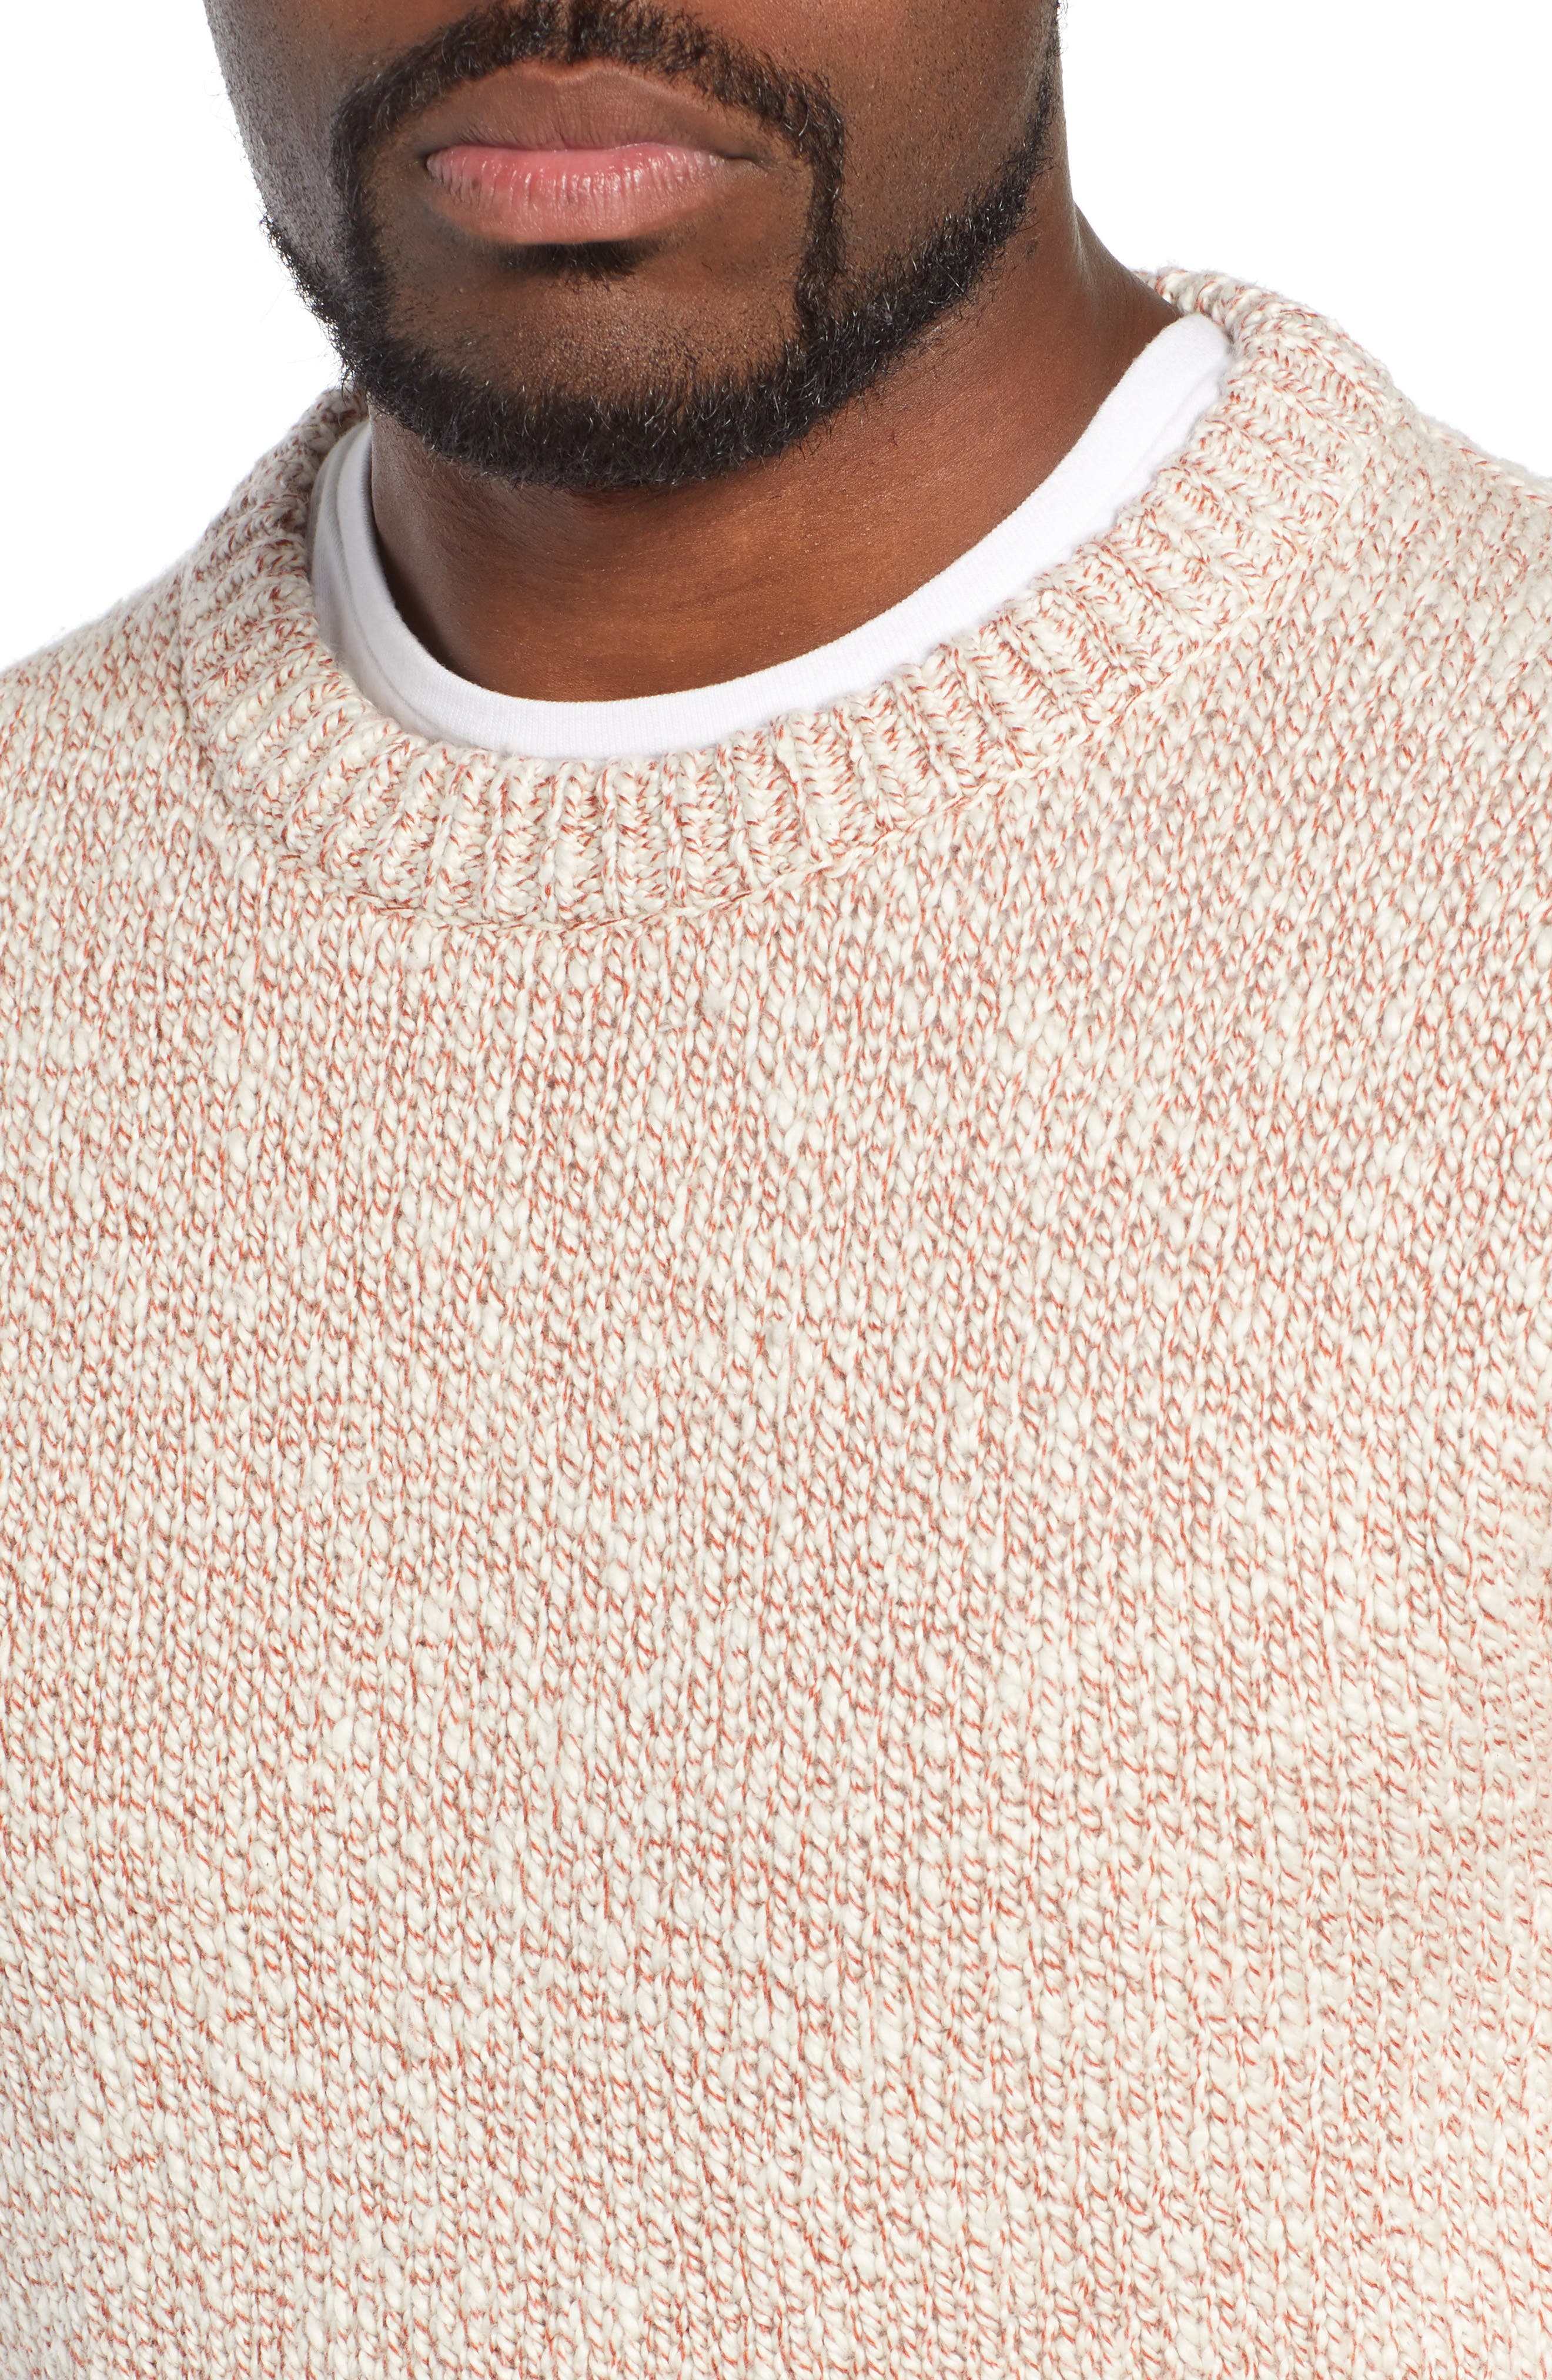 Wallace & Barnes Crewneck Marled Cotton Sweater,                             Alternate thumbnail 4, color,                             TERRACOTTA